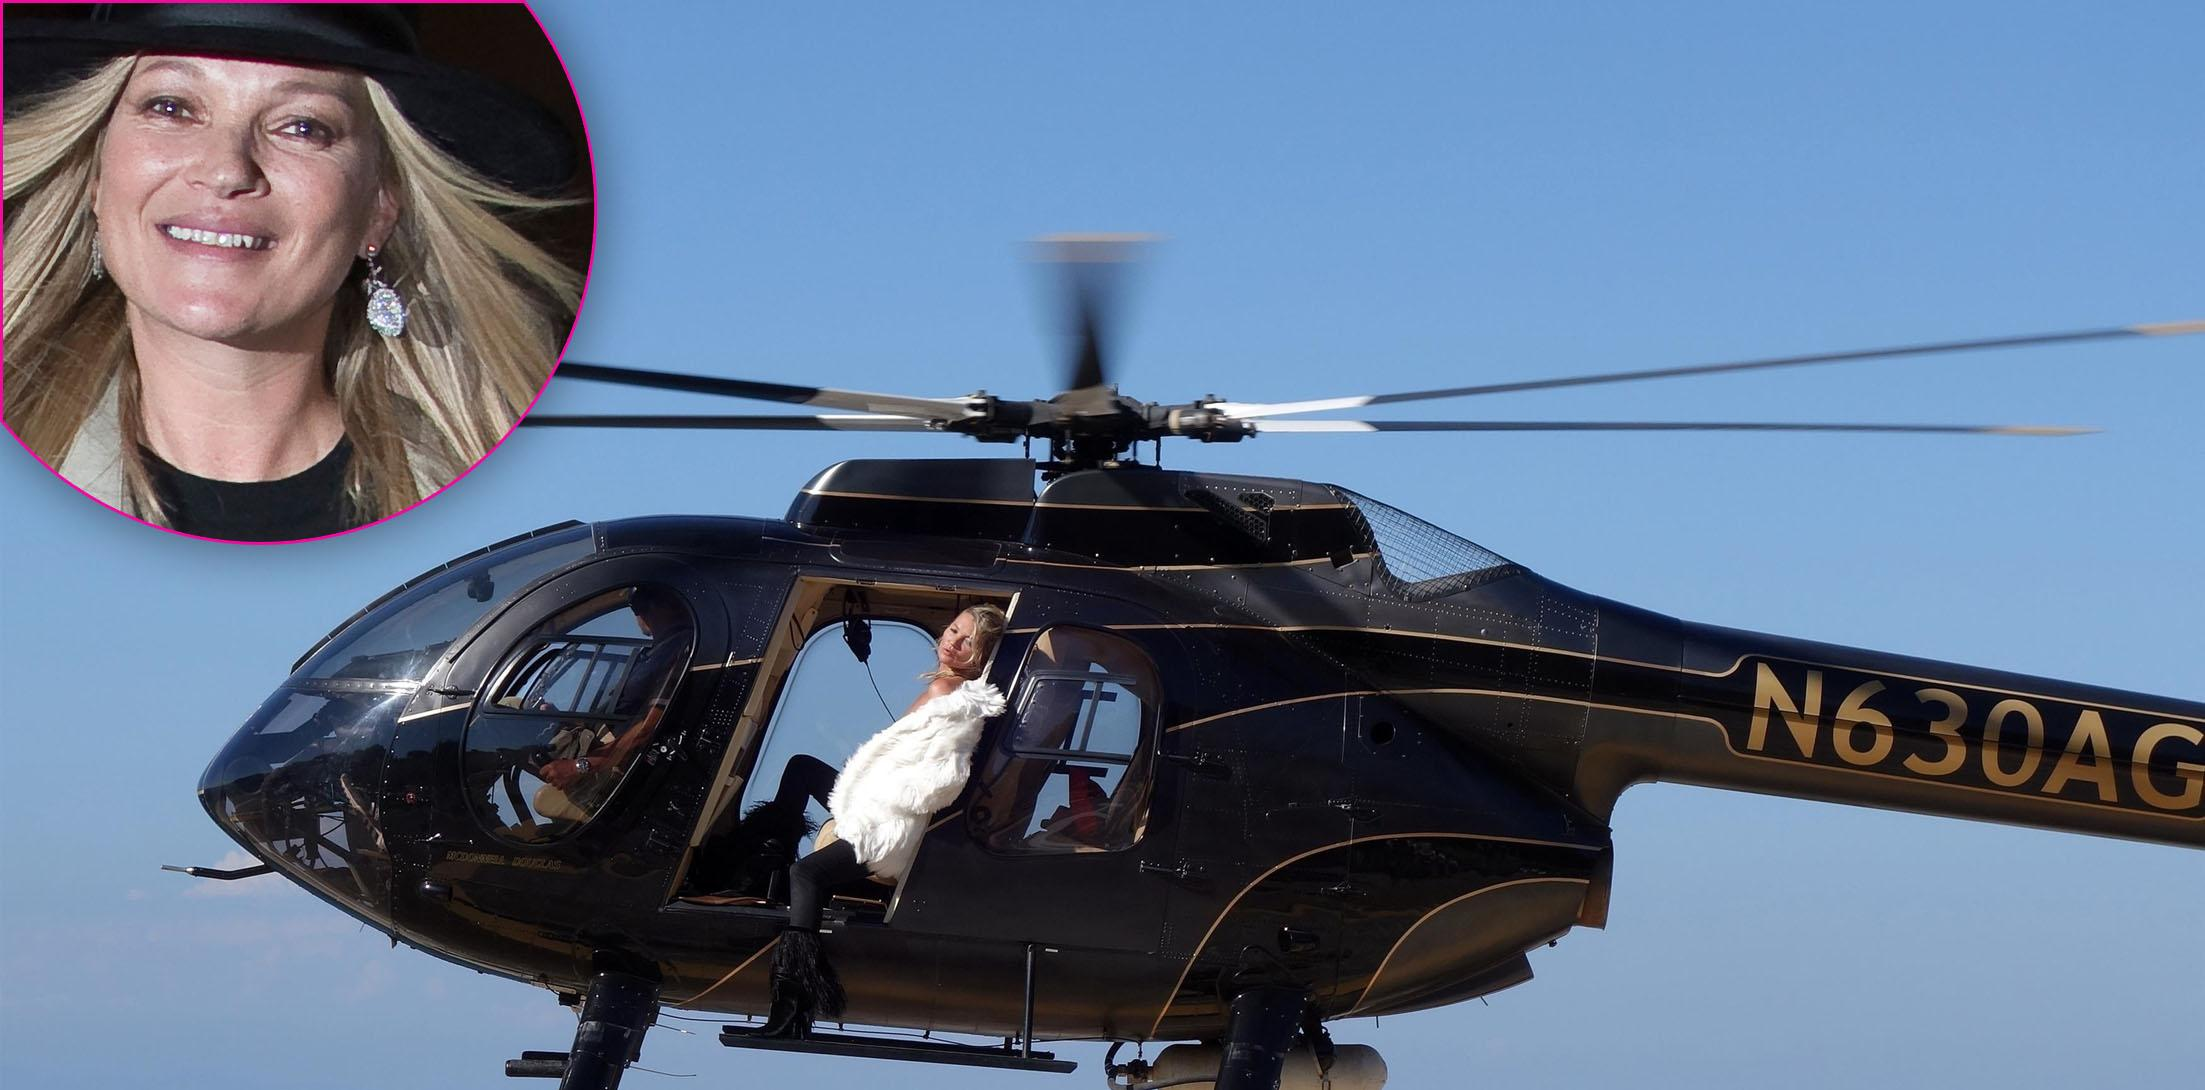 *PREMIUM EXCLUSIVE* Kate Moss does a very racy photoshoot at high altitudes!